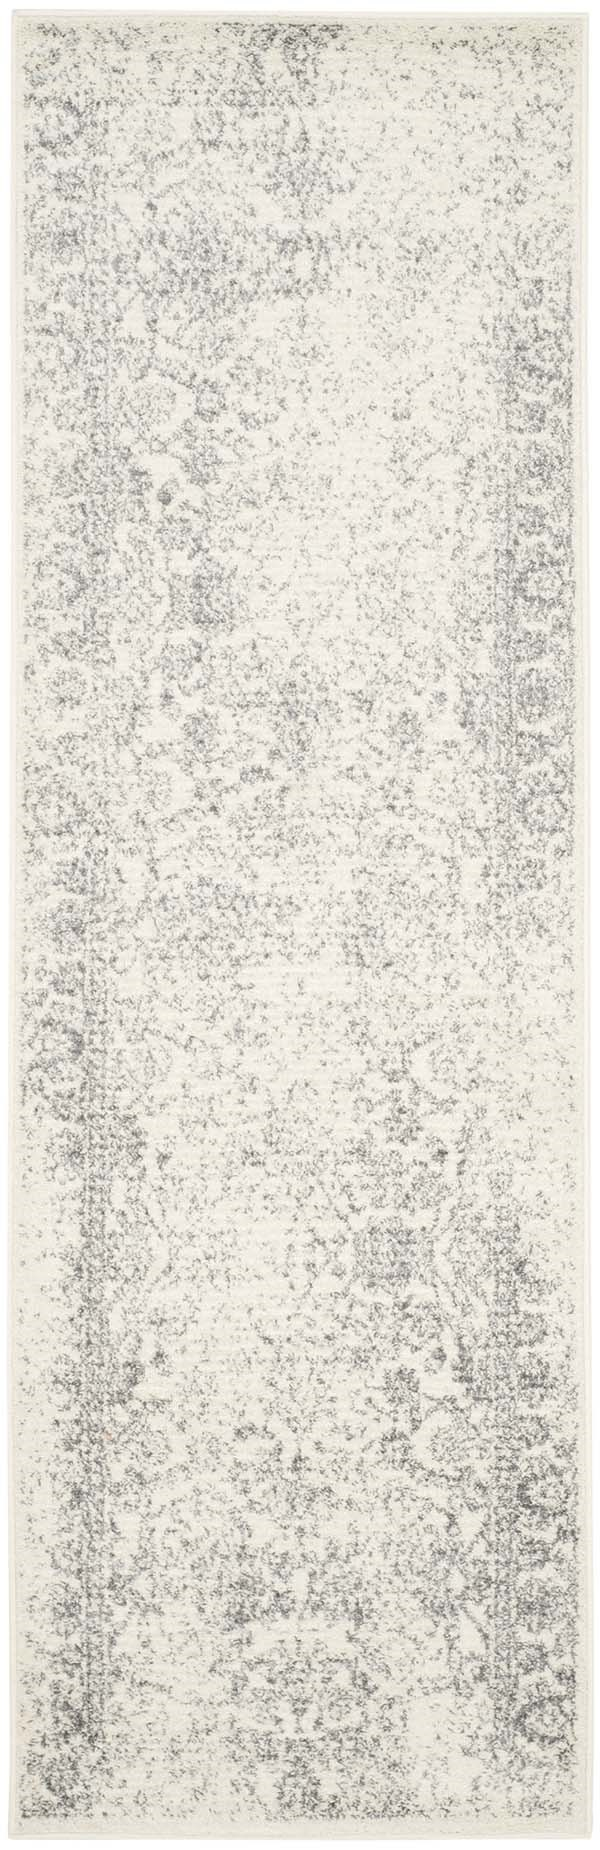 Ivory, Silver (C) Vintage / Overdyed Area Rug